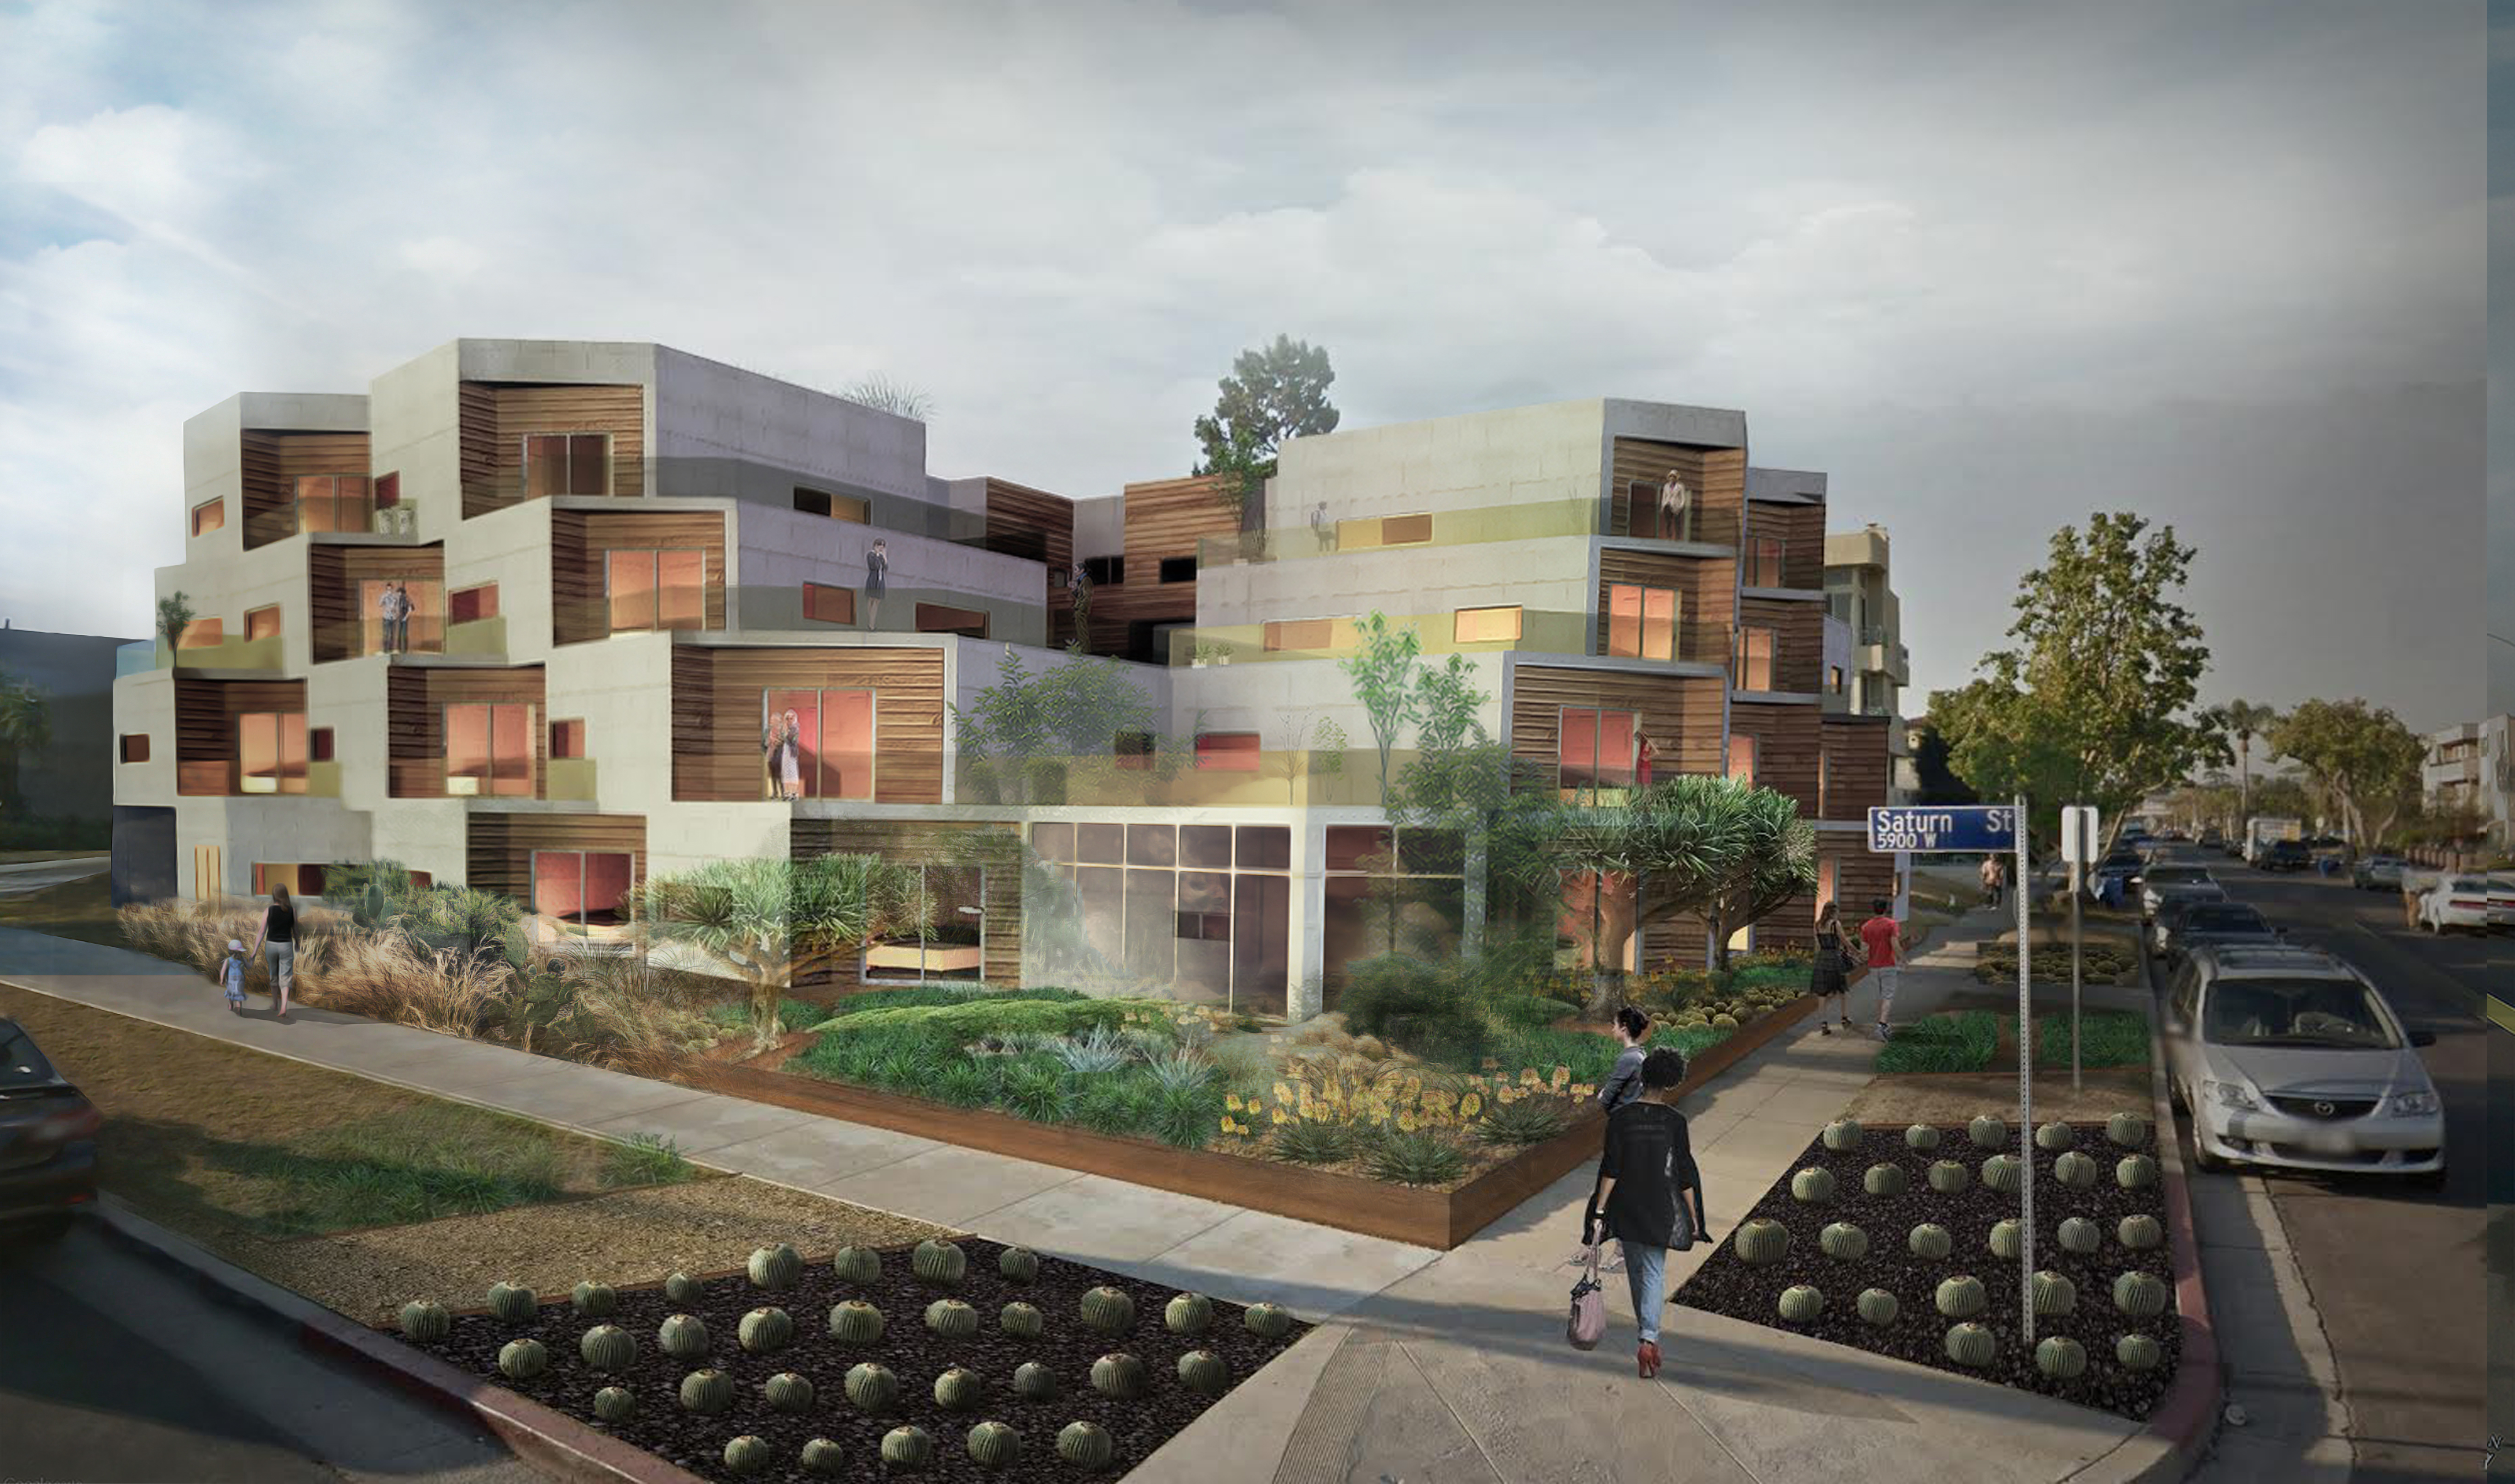 This new Mid-City apartment building will replace pink houses that neighbors hate